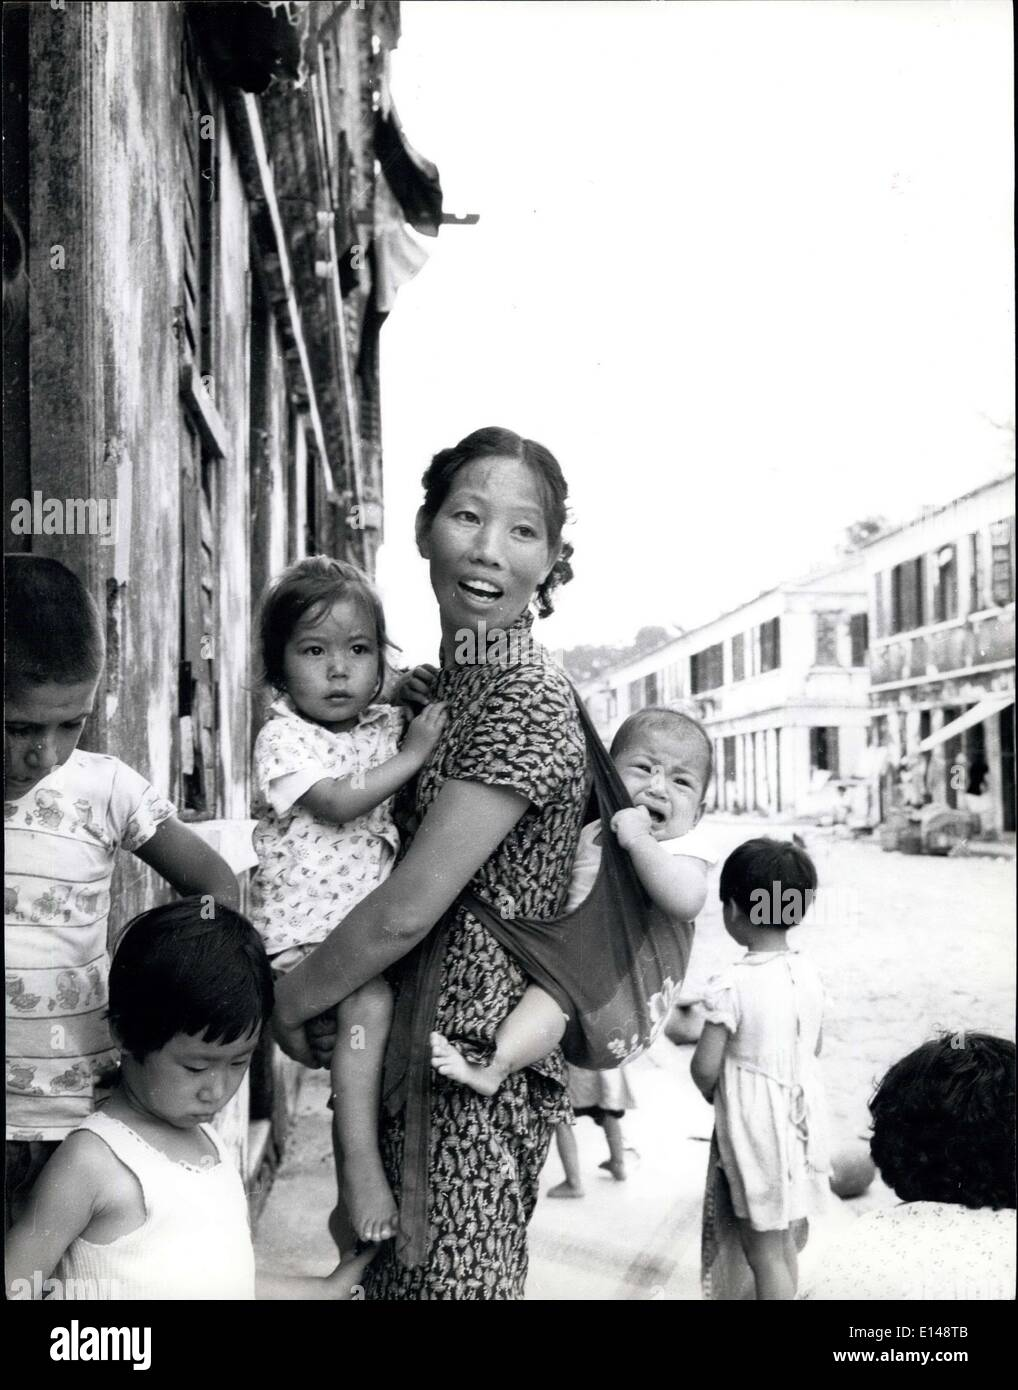 Apr. 17, 2012 - Family life carries on whatever the political tensions in Macao. ES - Stock Image